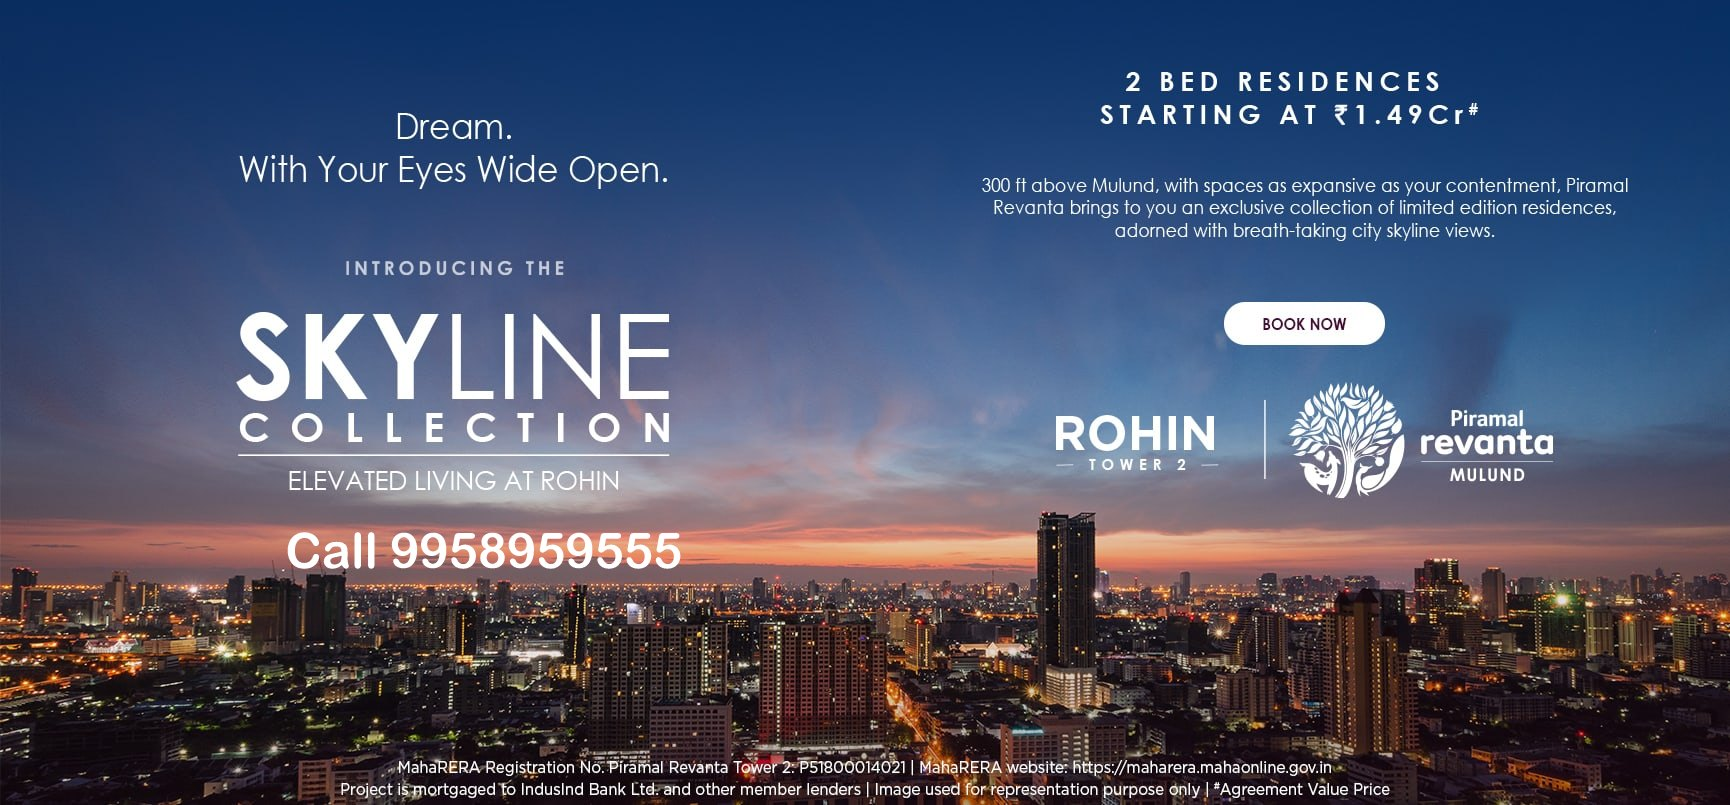 Launching The Skyline Collection Limited Edition 2BHKs @ Piramal Revanta Mulund